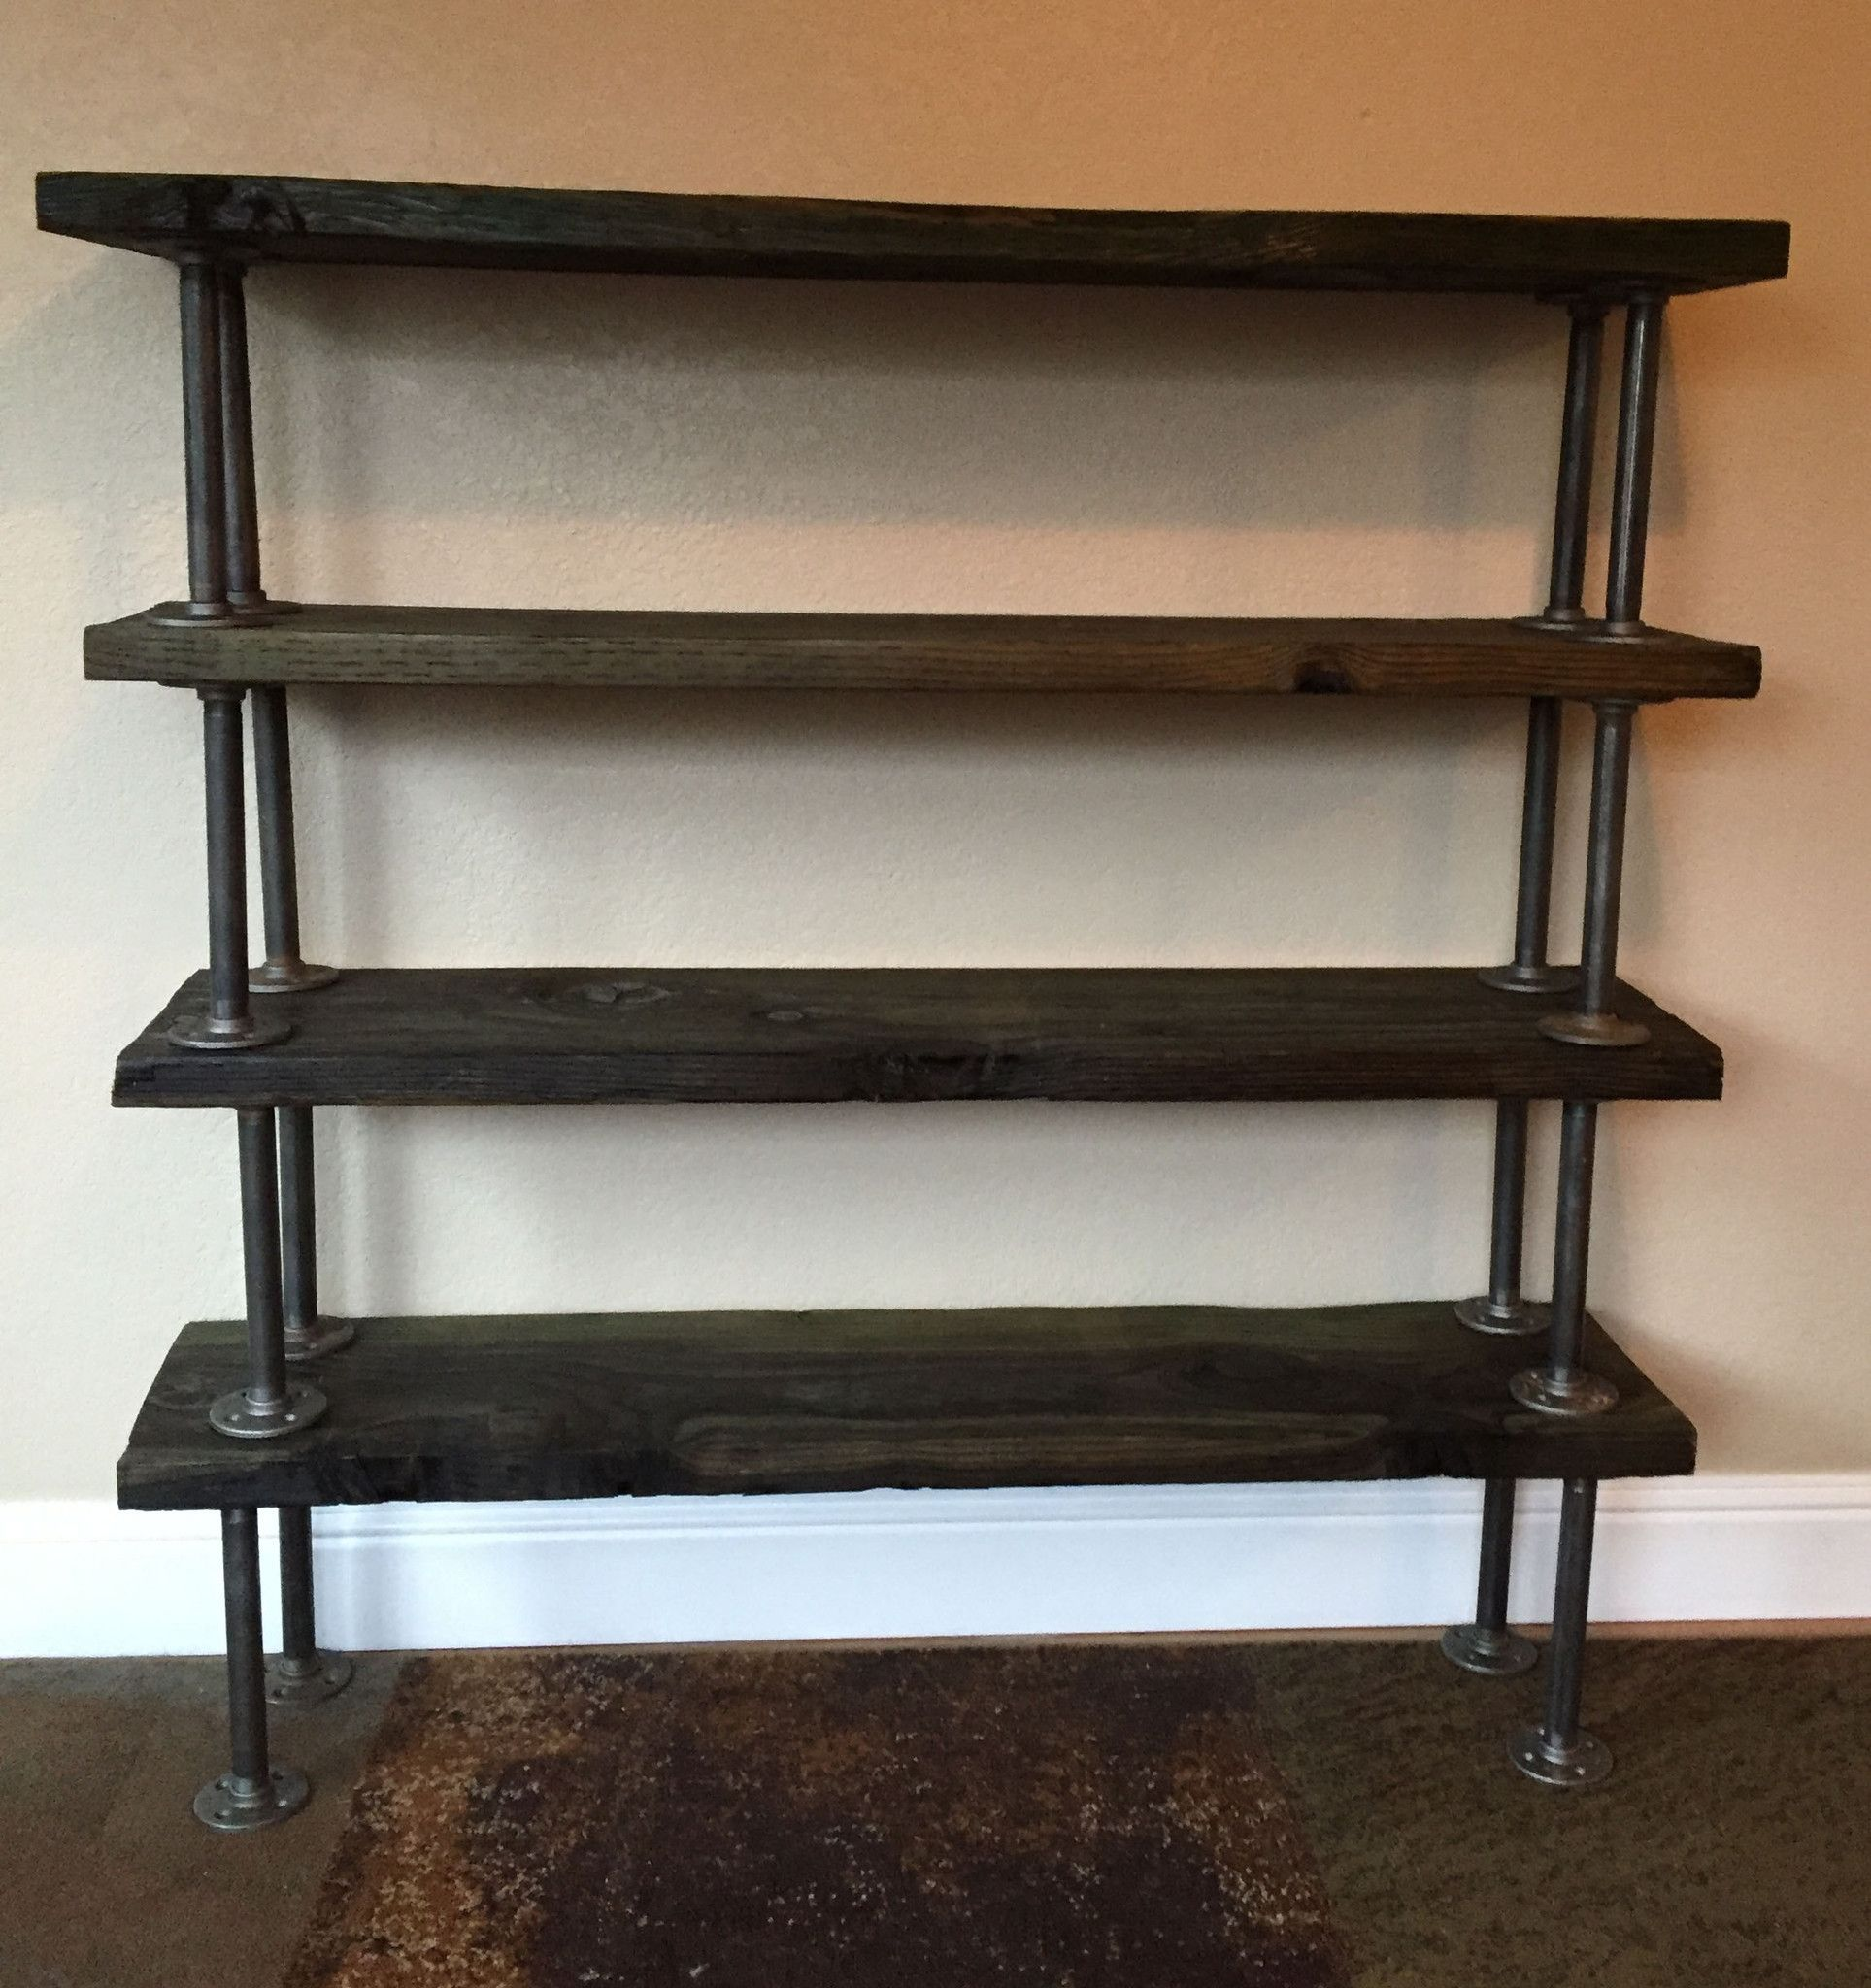 I made this as a reclaimed wooden bookcase but you can use it for